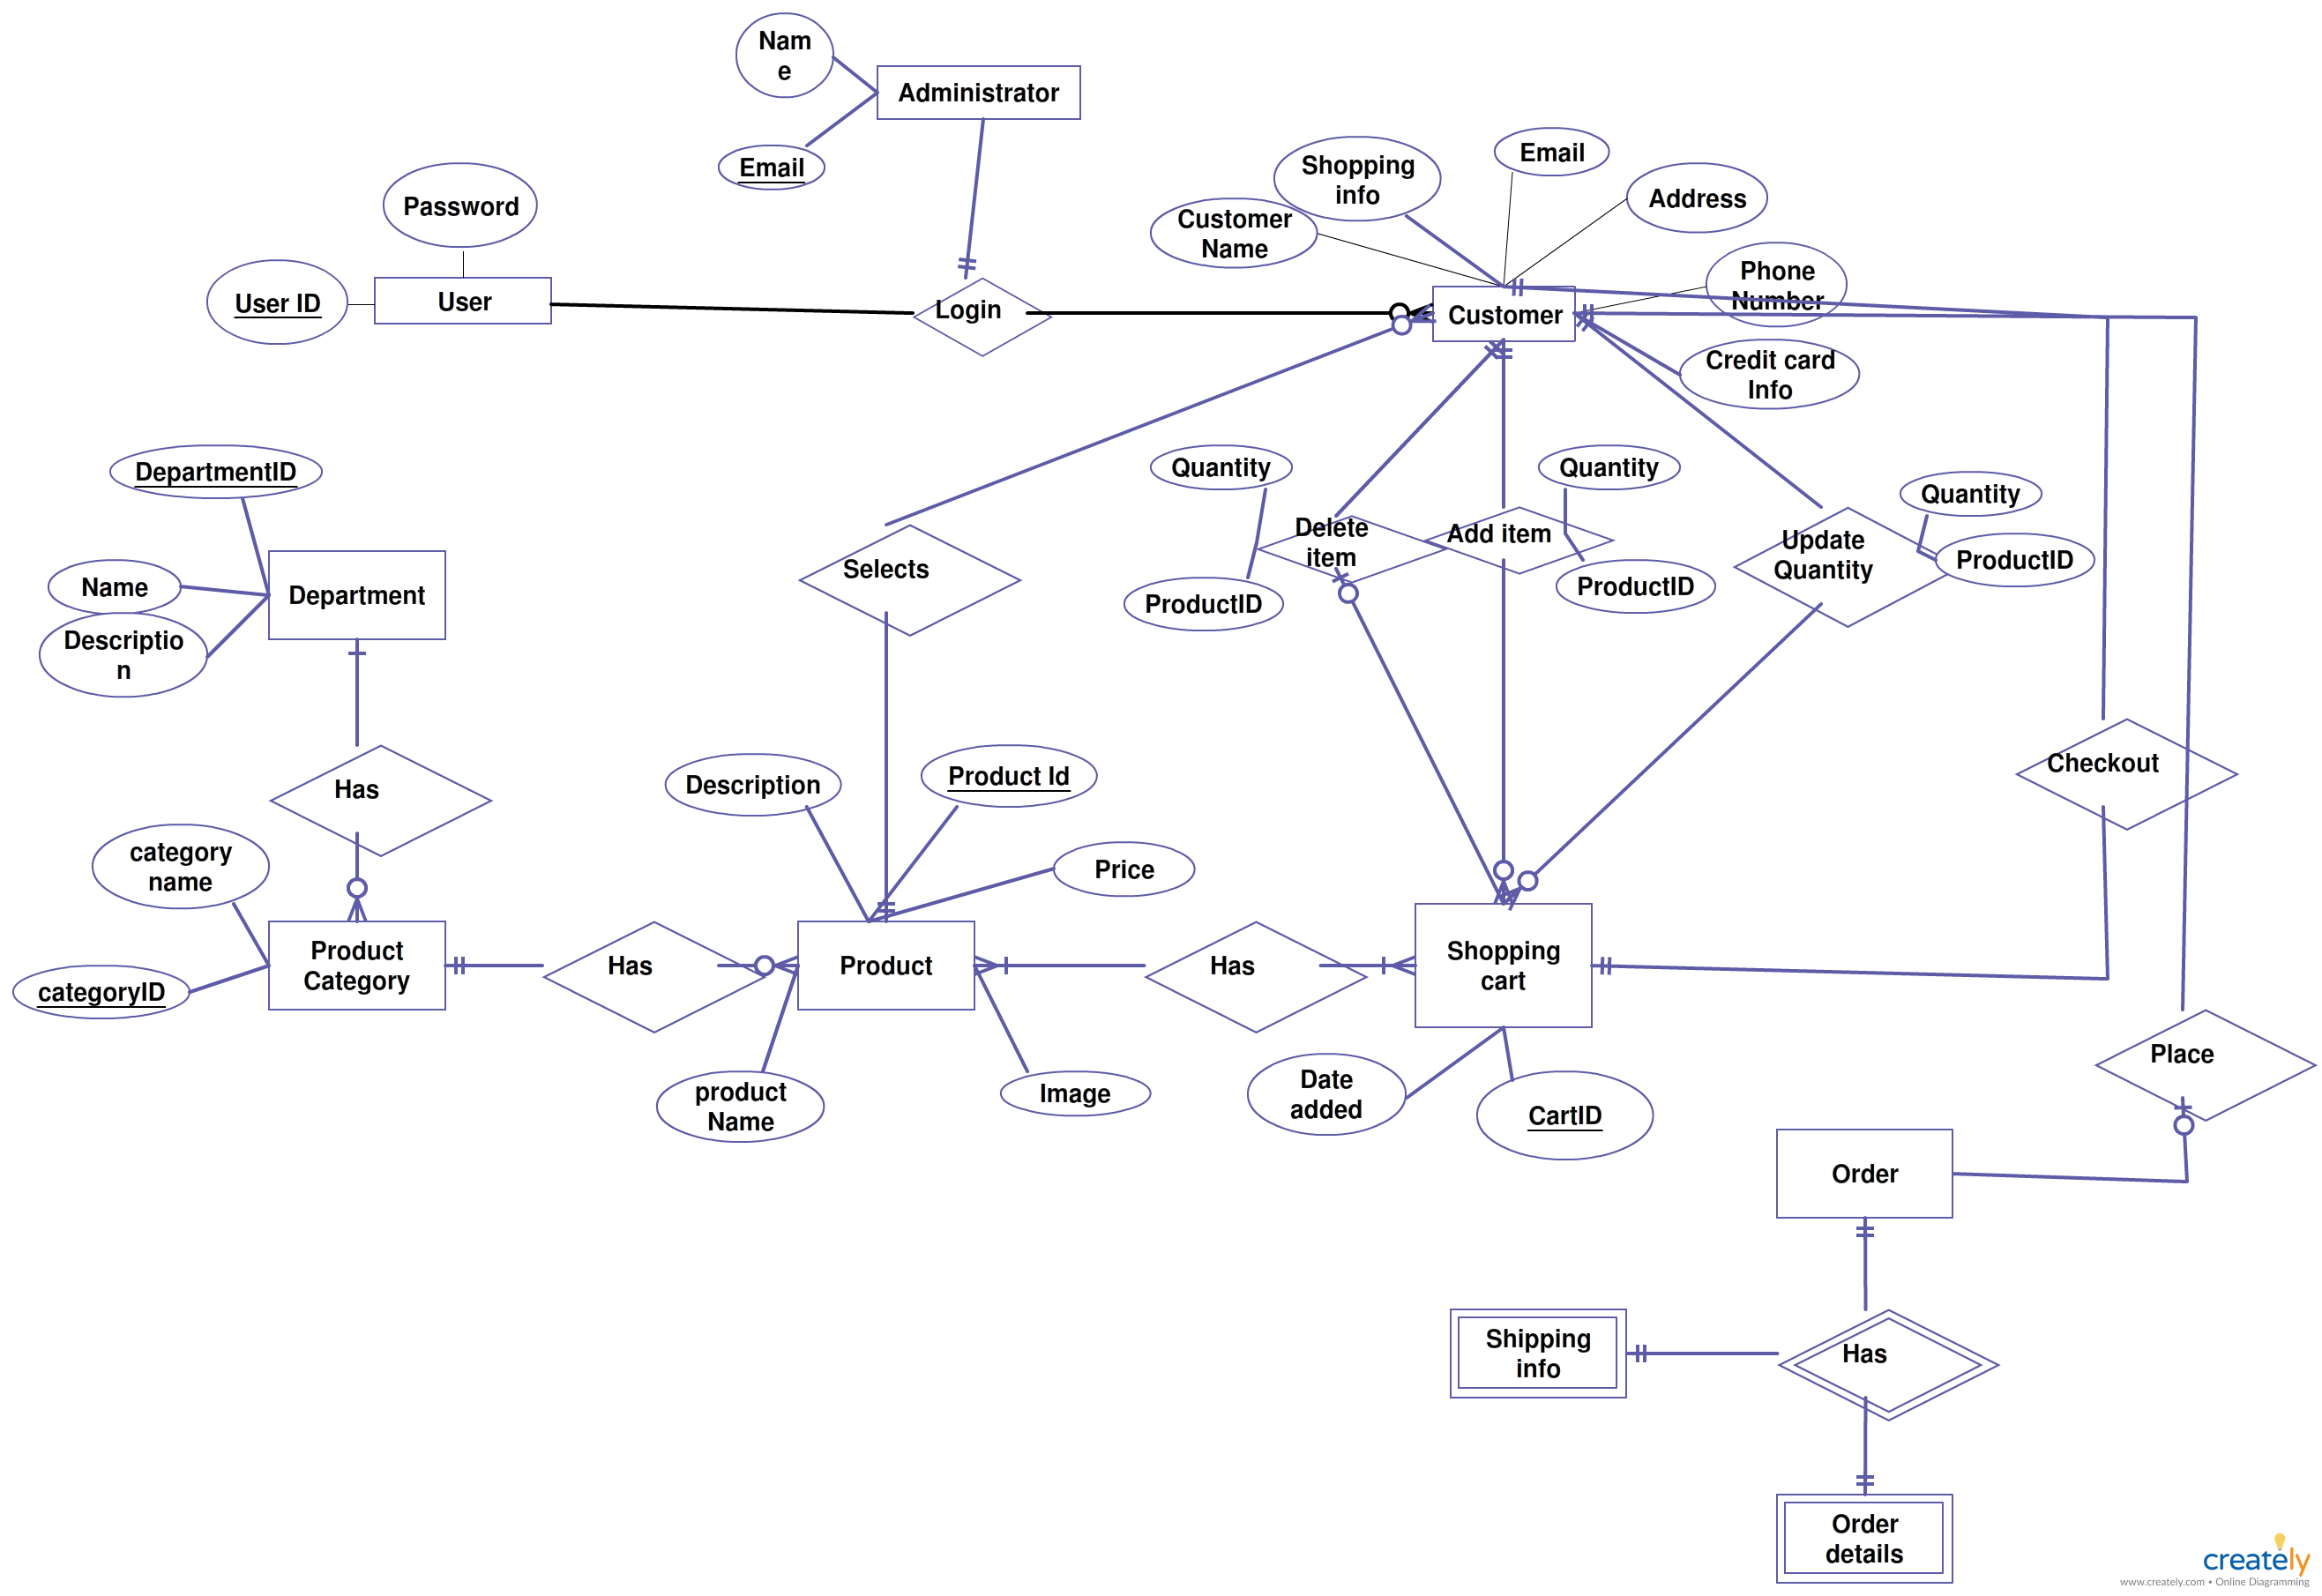 Er Diagrams Help Us To Visualize How Data Is Connected In A General Sparxsystems Europe Reading Sample Project Development With Uml And Way Are Particularly Useful For Constructing Relational Database The Example